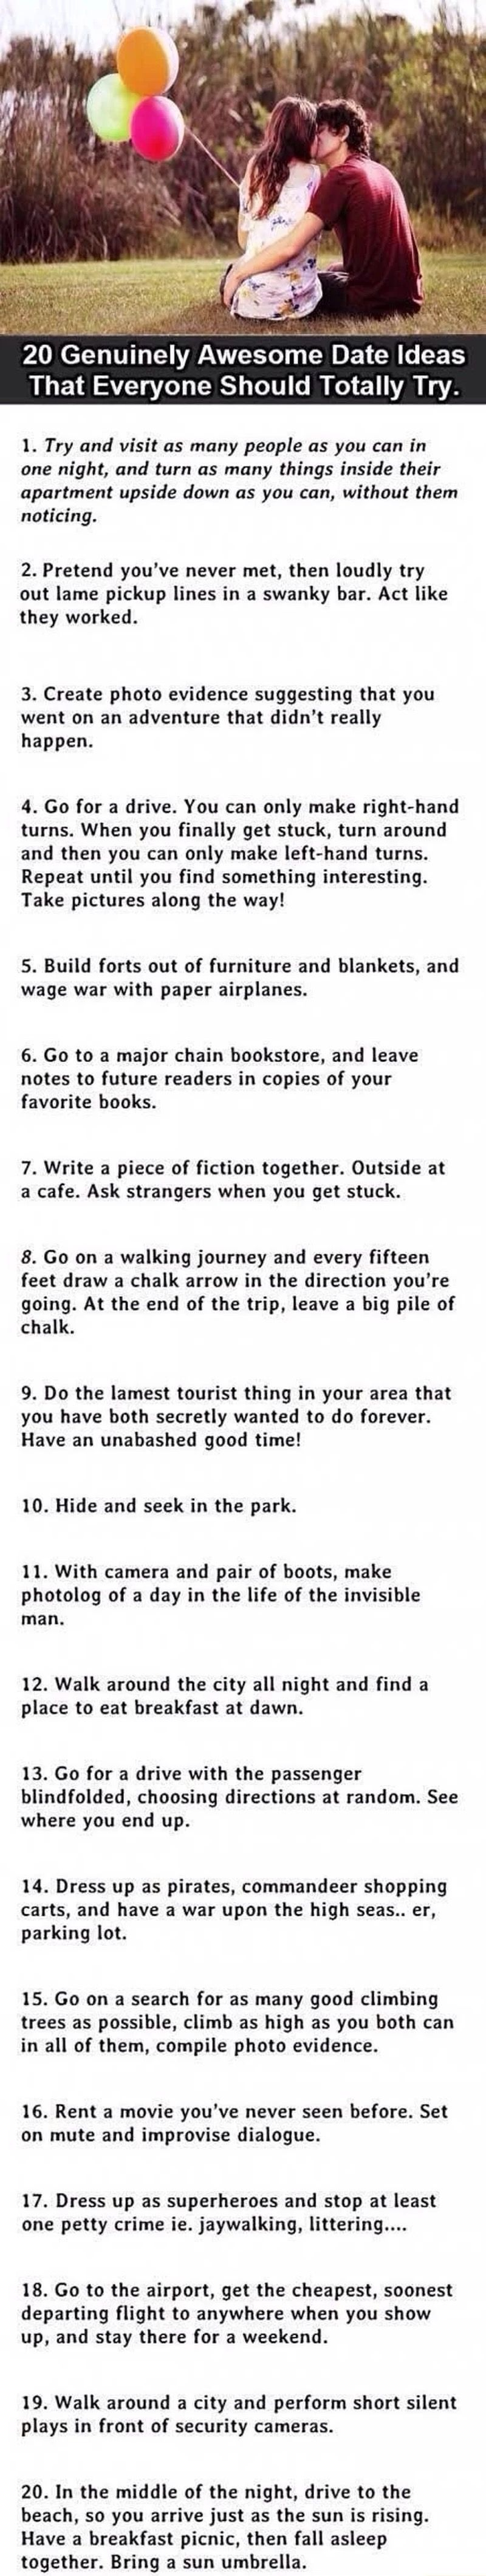 Things to do with someone you are dating